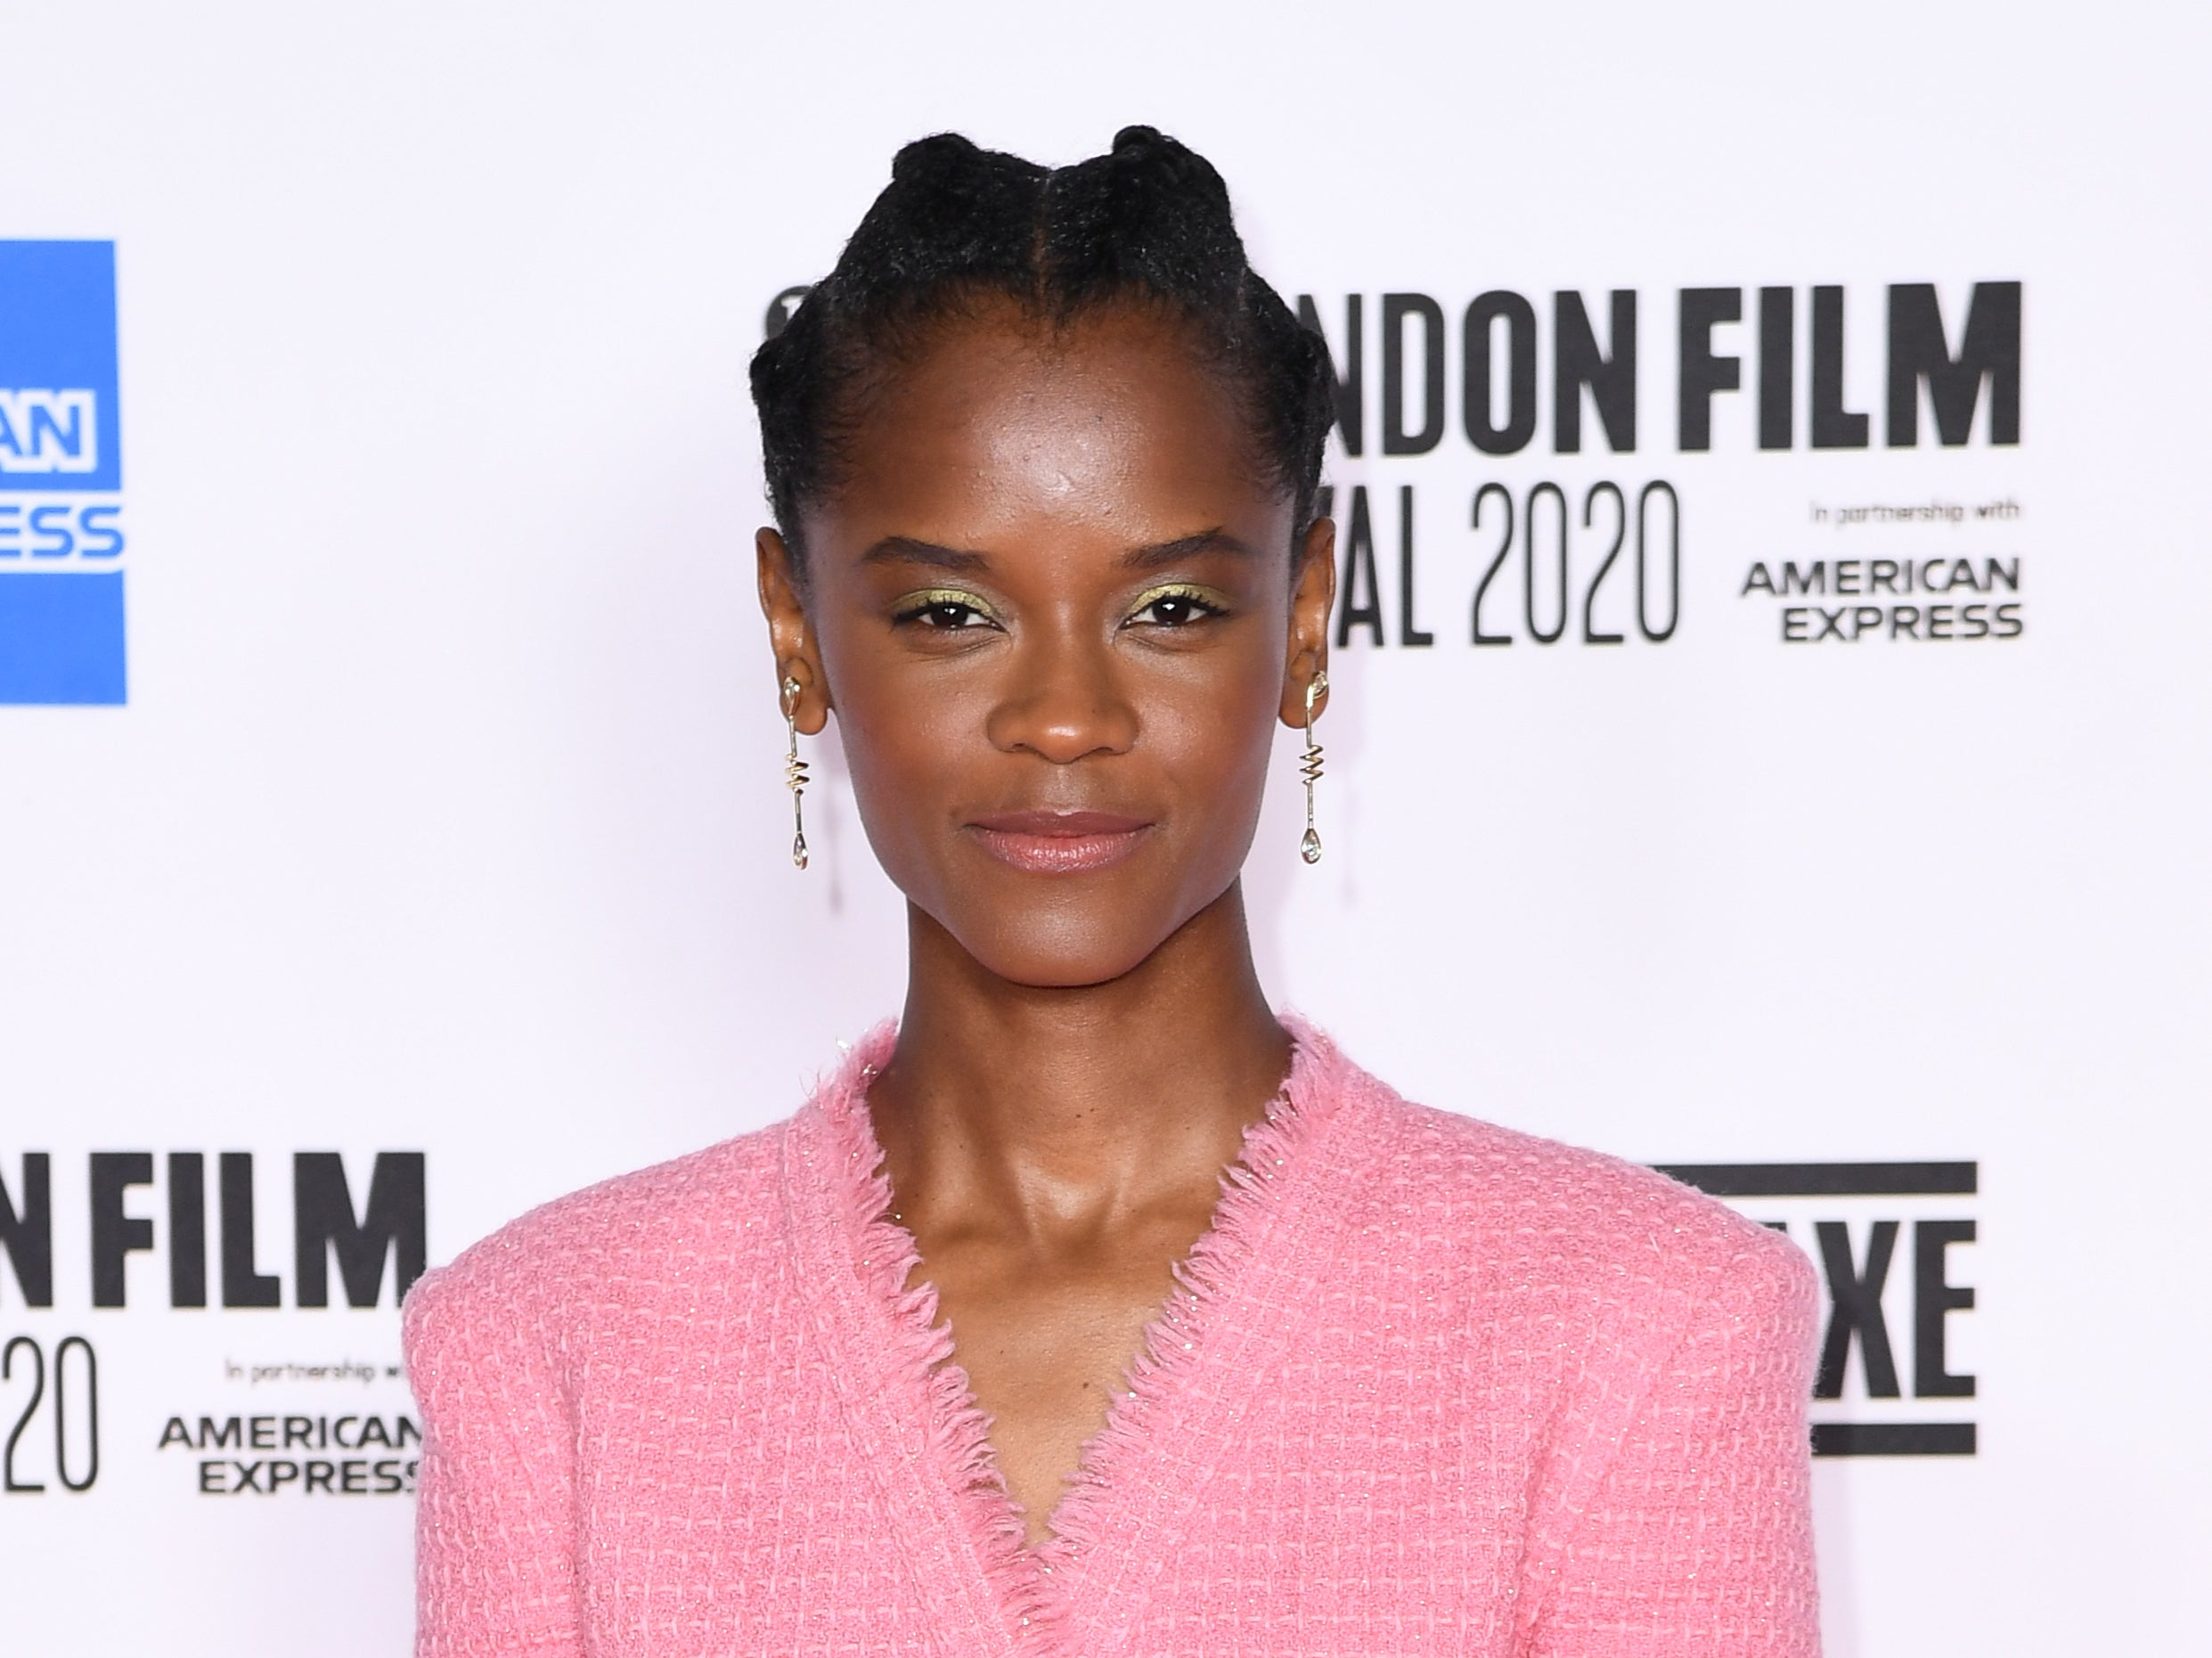 Marvel star Letitia Wright criticised for sharing anti-vaxx Covid video – The Independent